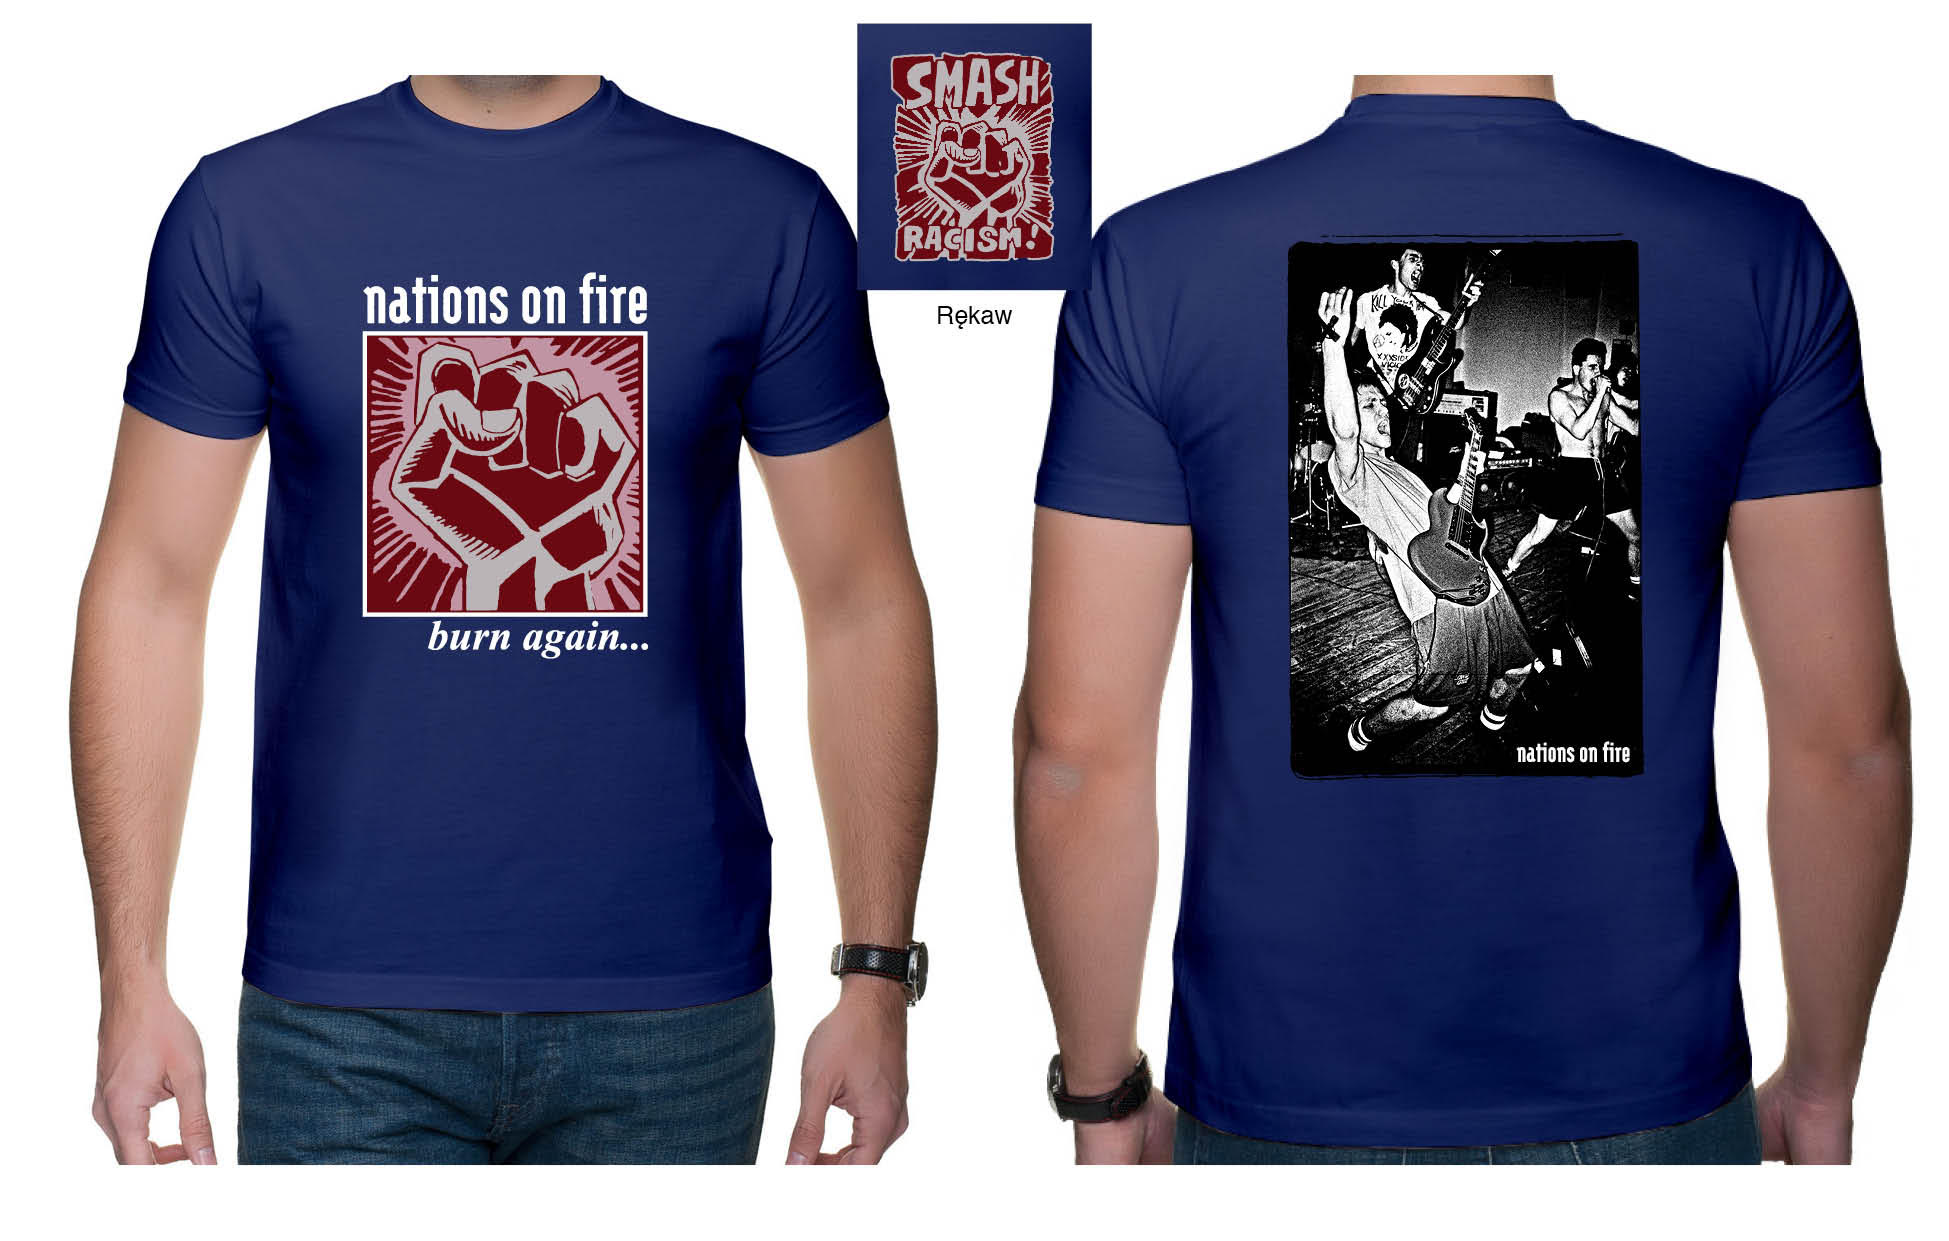 "NATIONS ON FIRE ""Burn again"" t-shirt PRE-ORDER"